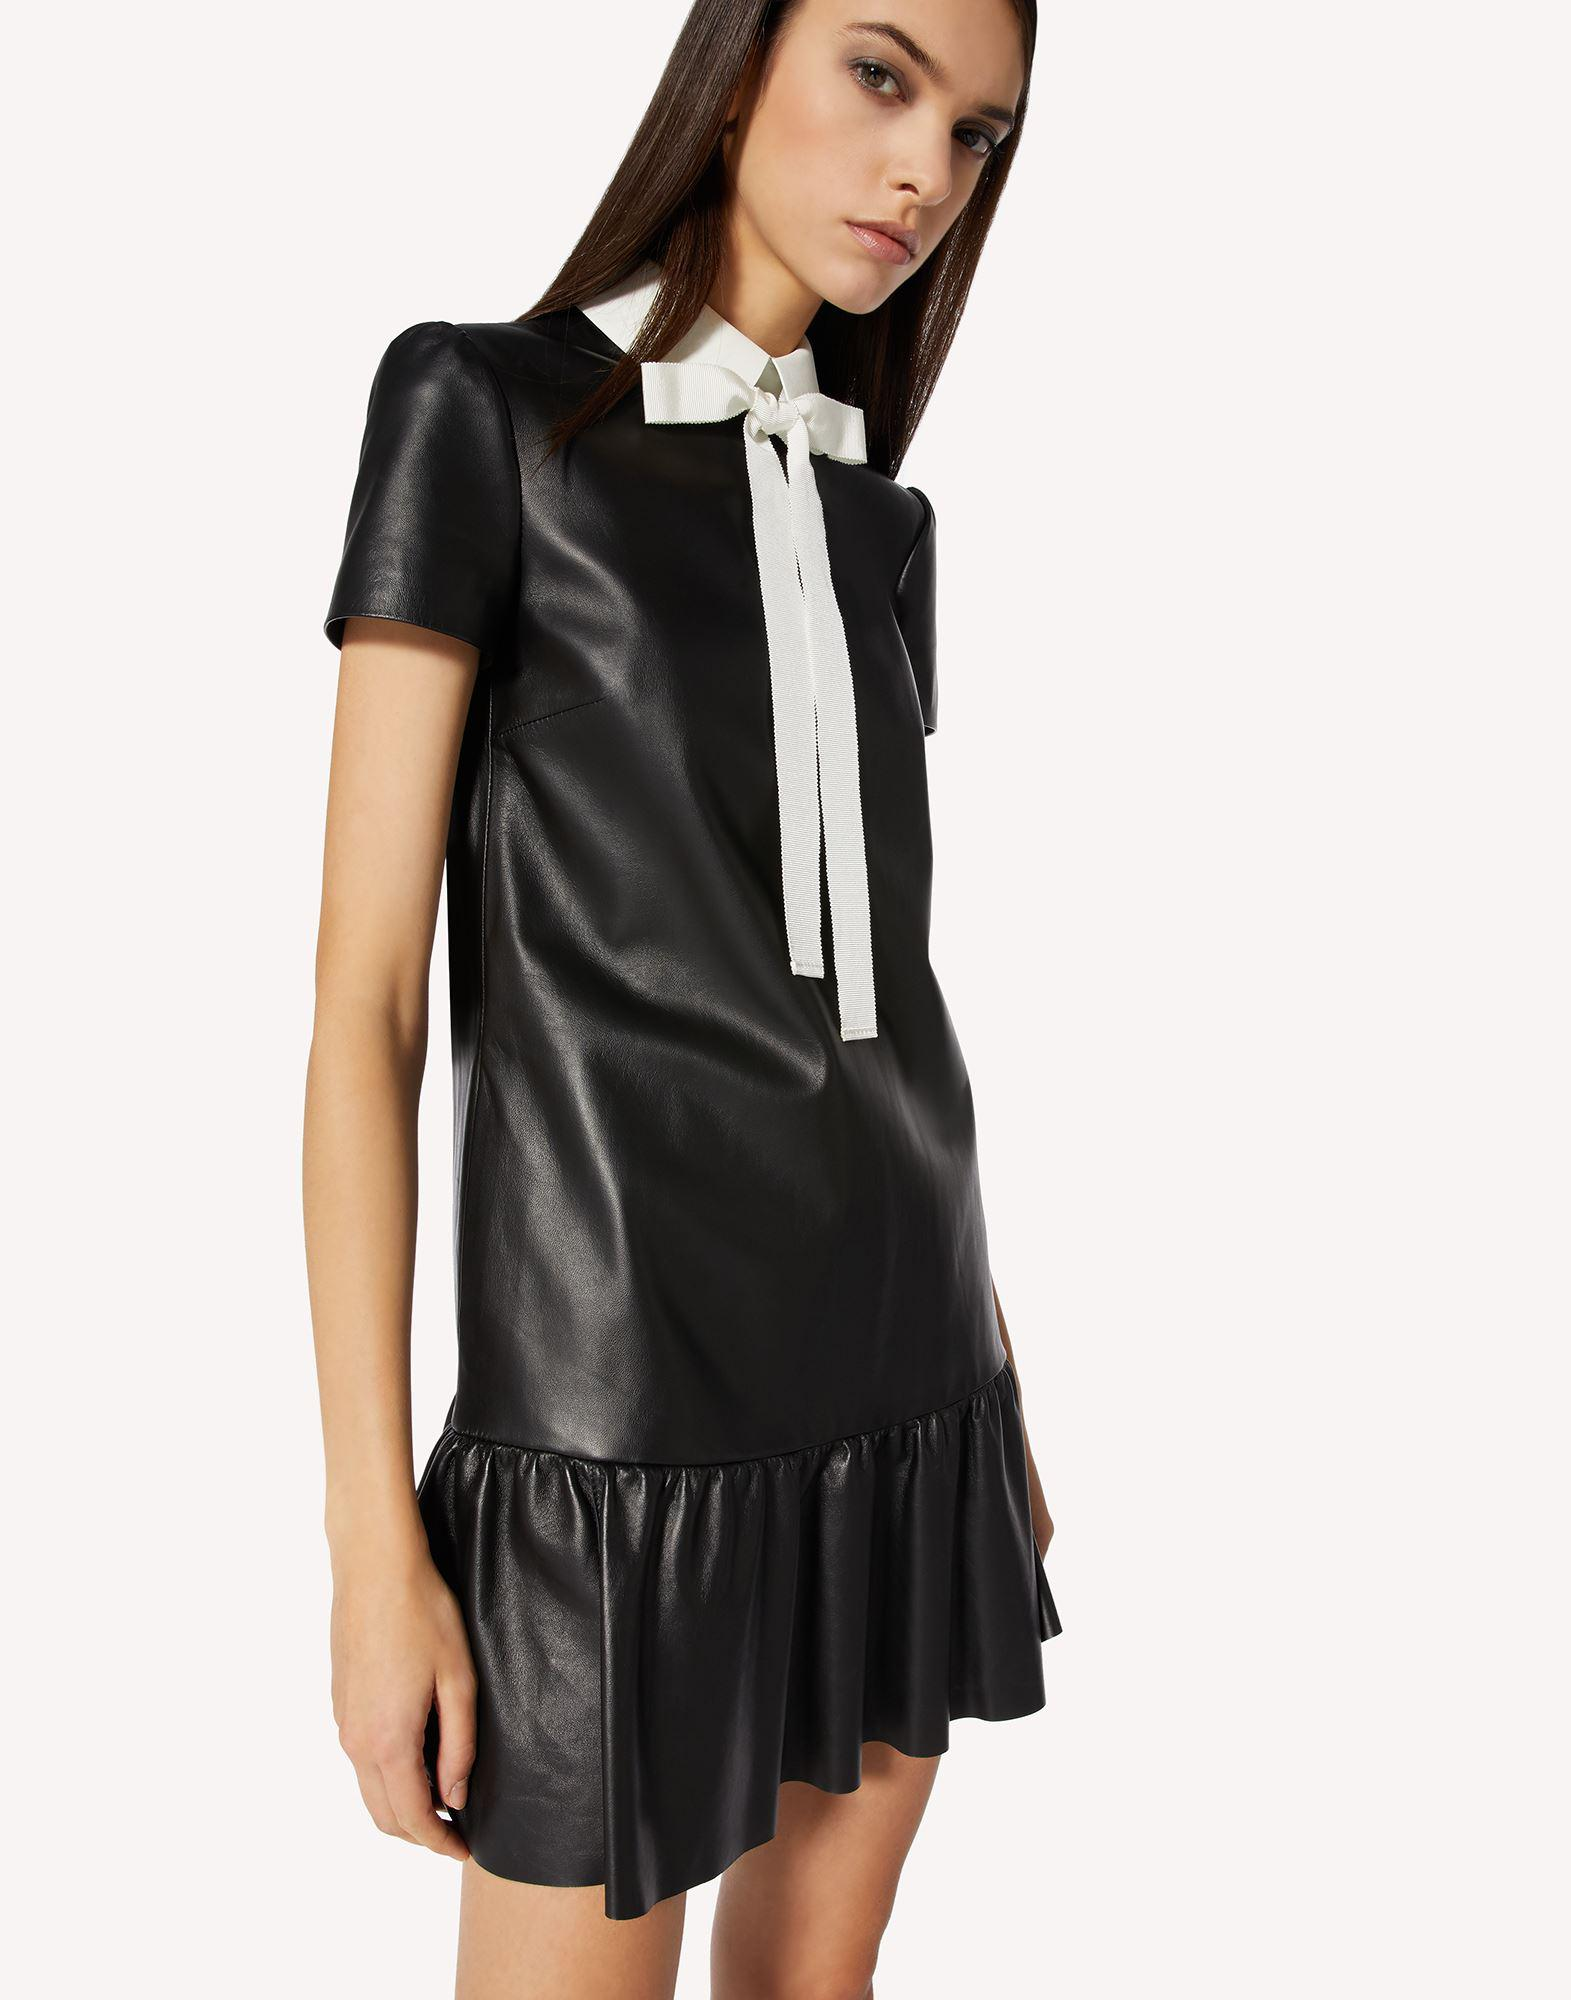 NAPPA LEATHER DRESS WITH COLLAR DETAIL 3